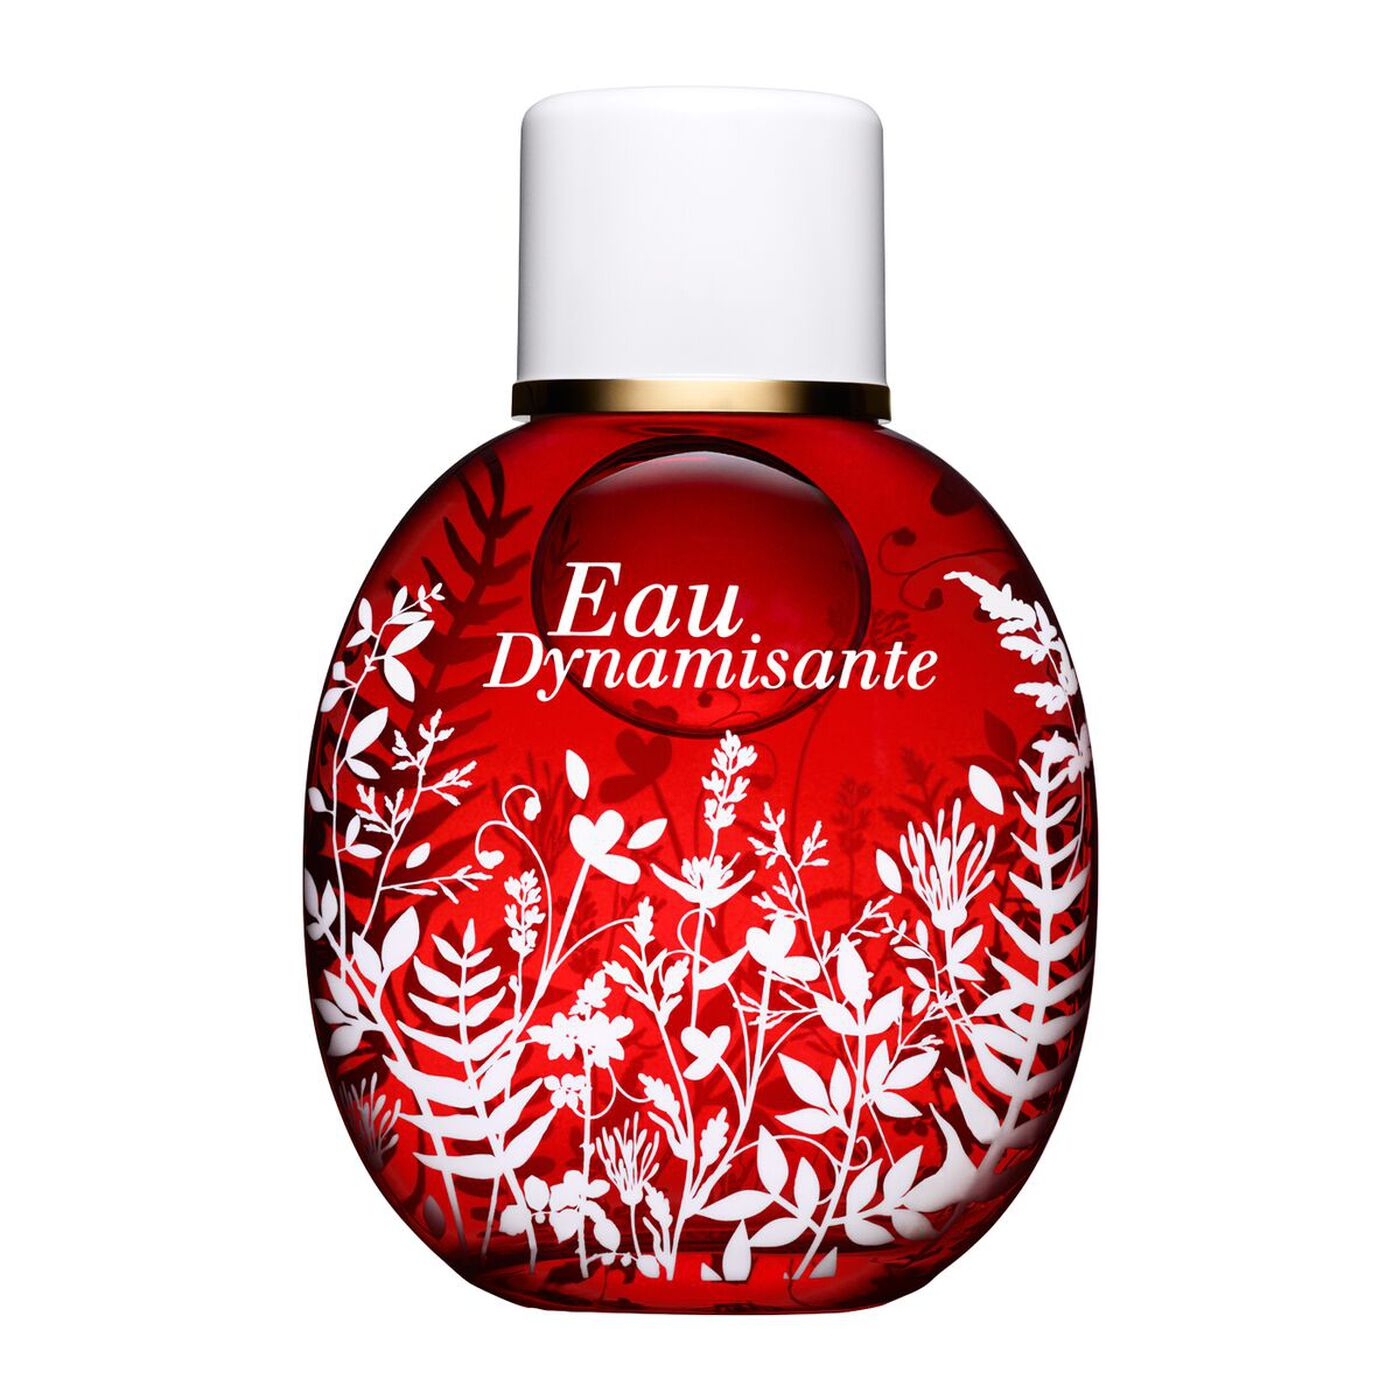 Eau%20Dynamisante%20Limited%20Edition